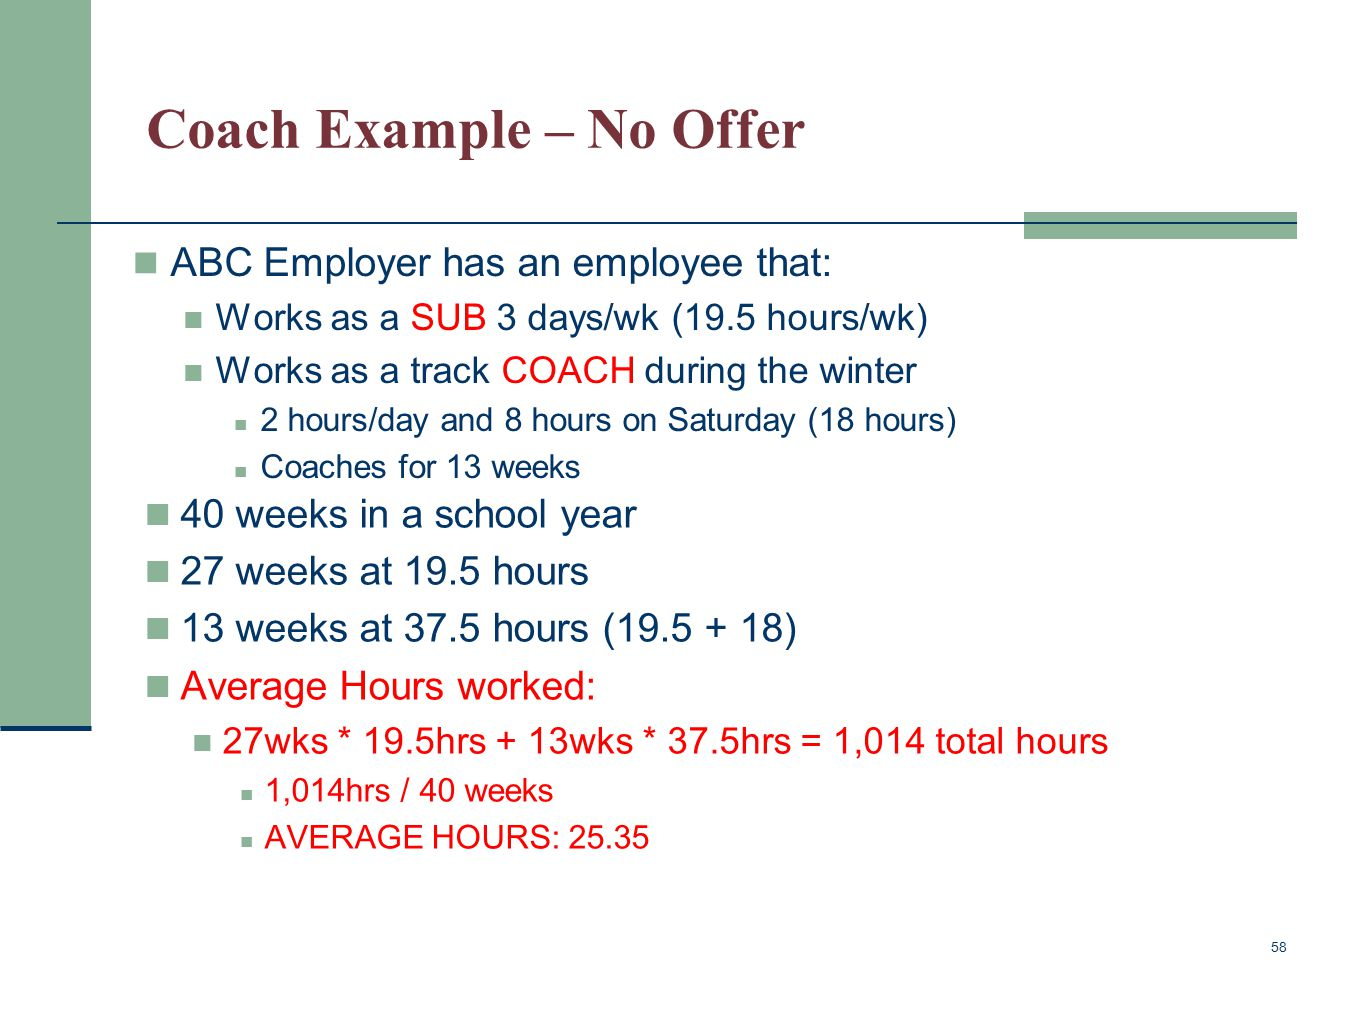 Coach Example – No Offer ABC Employer has an employee that: Works as a SUB 3 days/wk (19.5 hours/wk) Works as a track COACH during the winter 2 hours/day and 8 hours on Saturday (18 hours) Coaches for 13 weeks 58 40 weeks in a school year 27 weeks at 19.5 hours 13 weeks at 37.5 hours (19.5 + 18) Average Hours worked: 27wks * 19.5hrs + 13wks * 37.5hrs = 1,014 total hours 1,014hrs / 40 weeks AVERAGE HOURS: 25.35